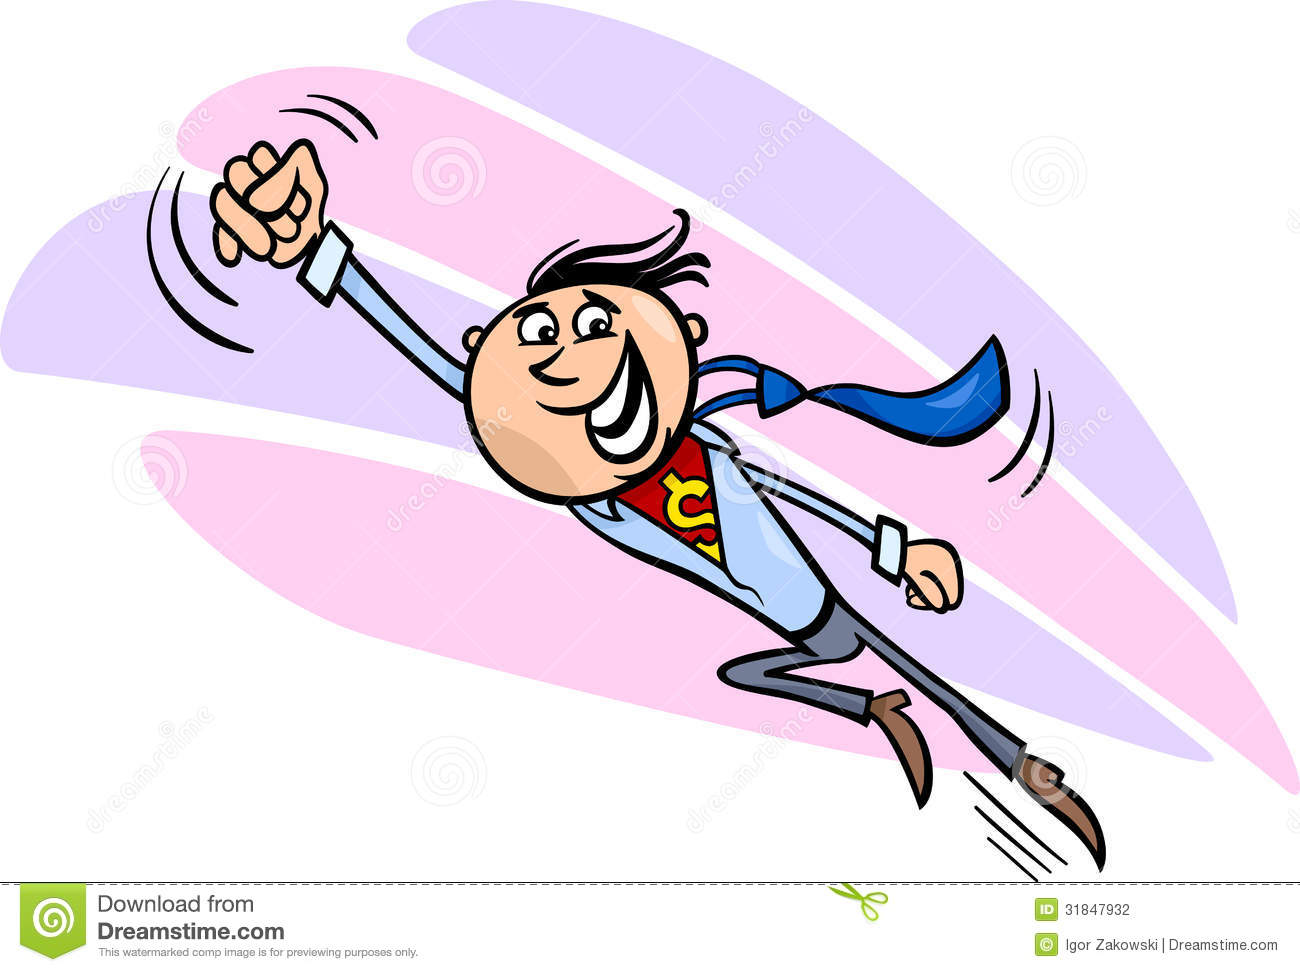 businessman-superhero-cartoon-illustration-concept-happy-man-as-flying-31847932.jpg